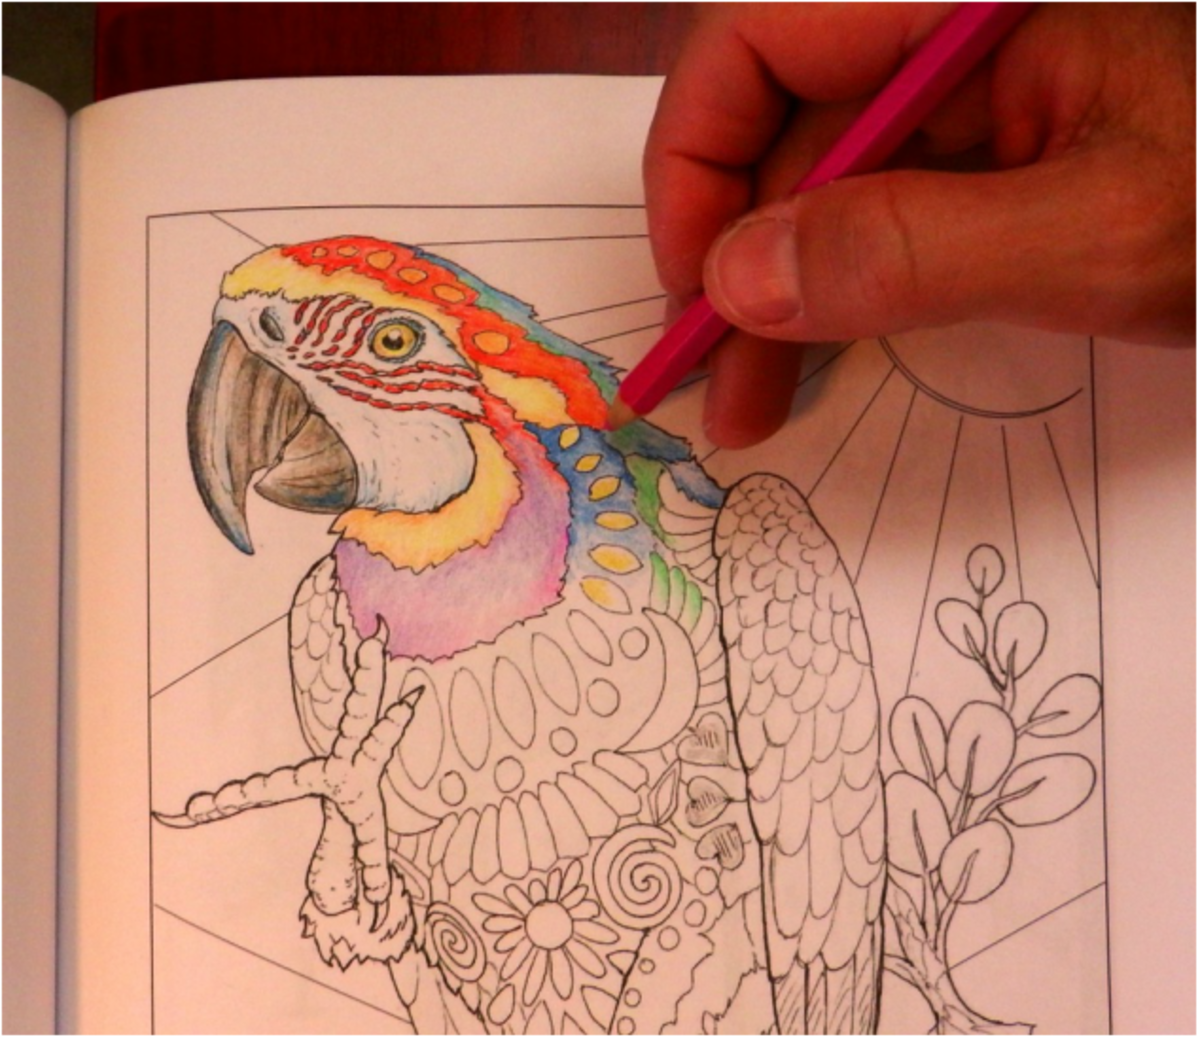 Coloring books are popular gifts for their stress relieving benefits